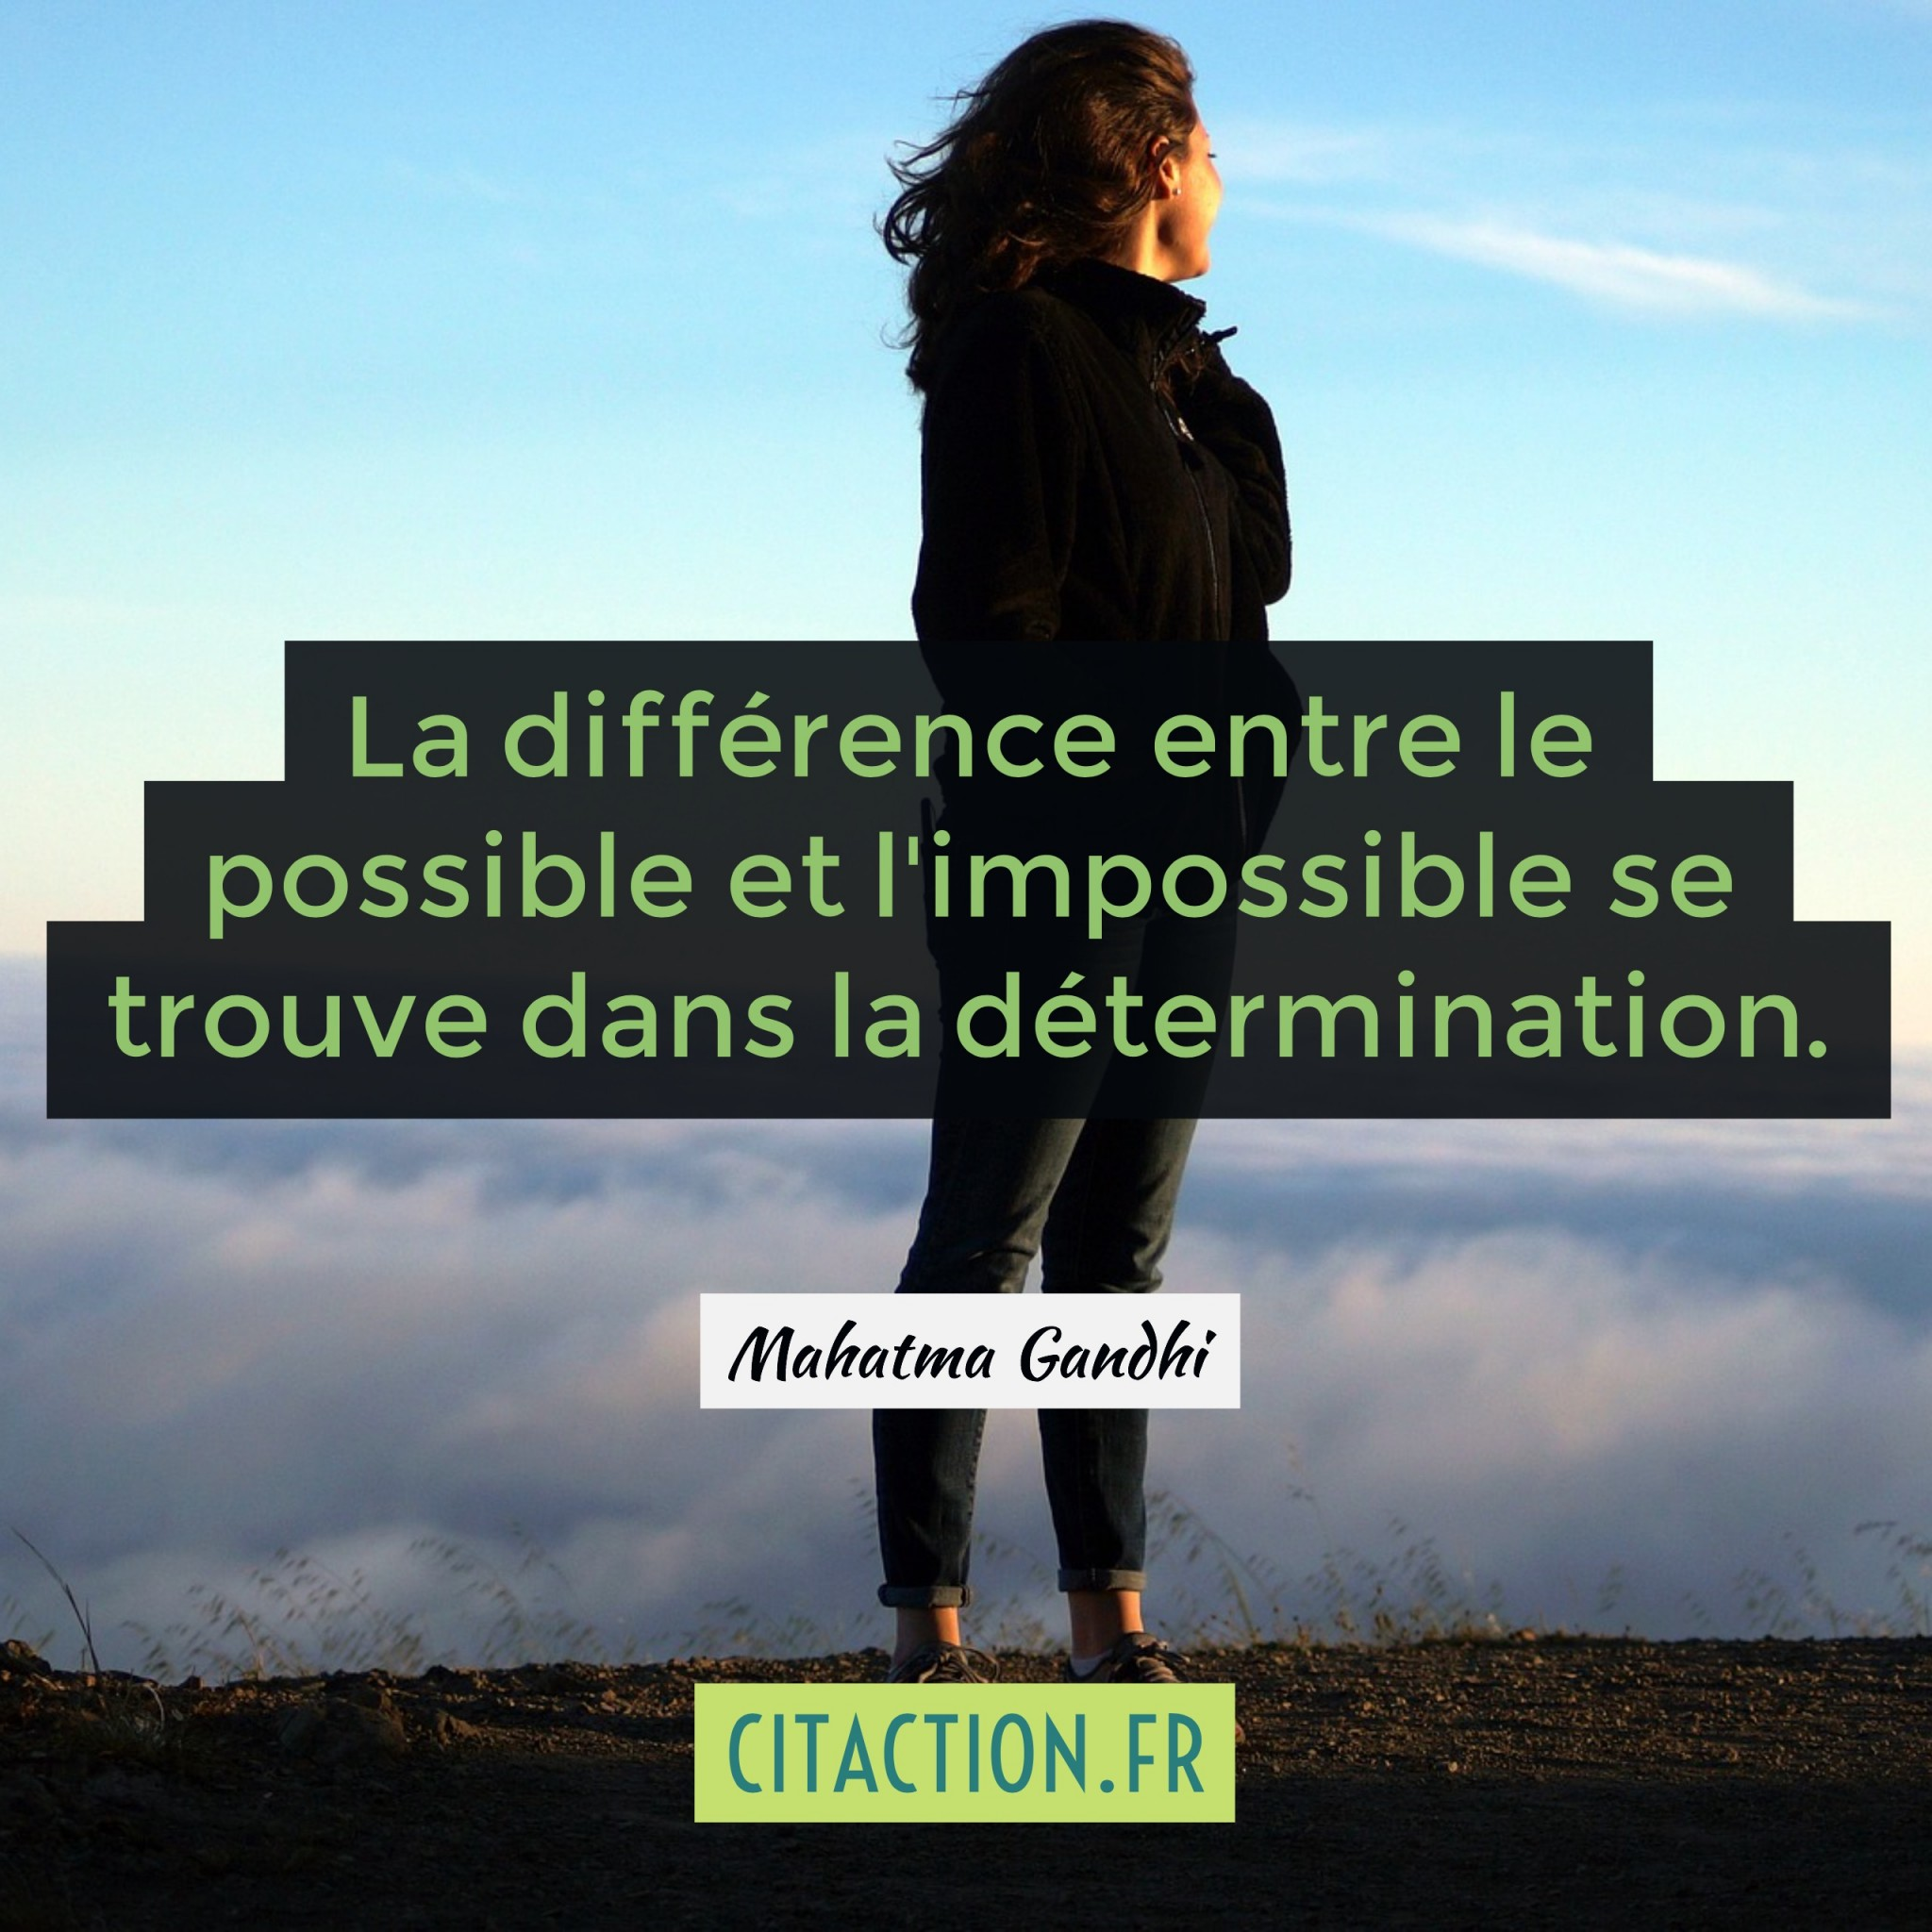 la-difference-entre-le-possible-et-limpossible-se-trouve-dans-la-determination